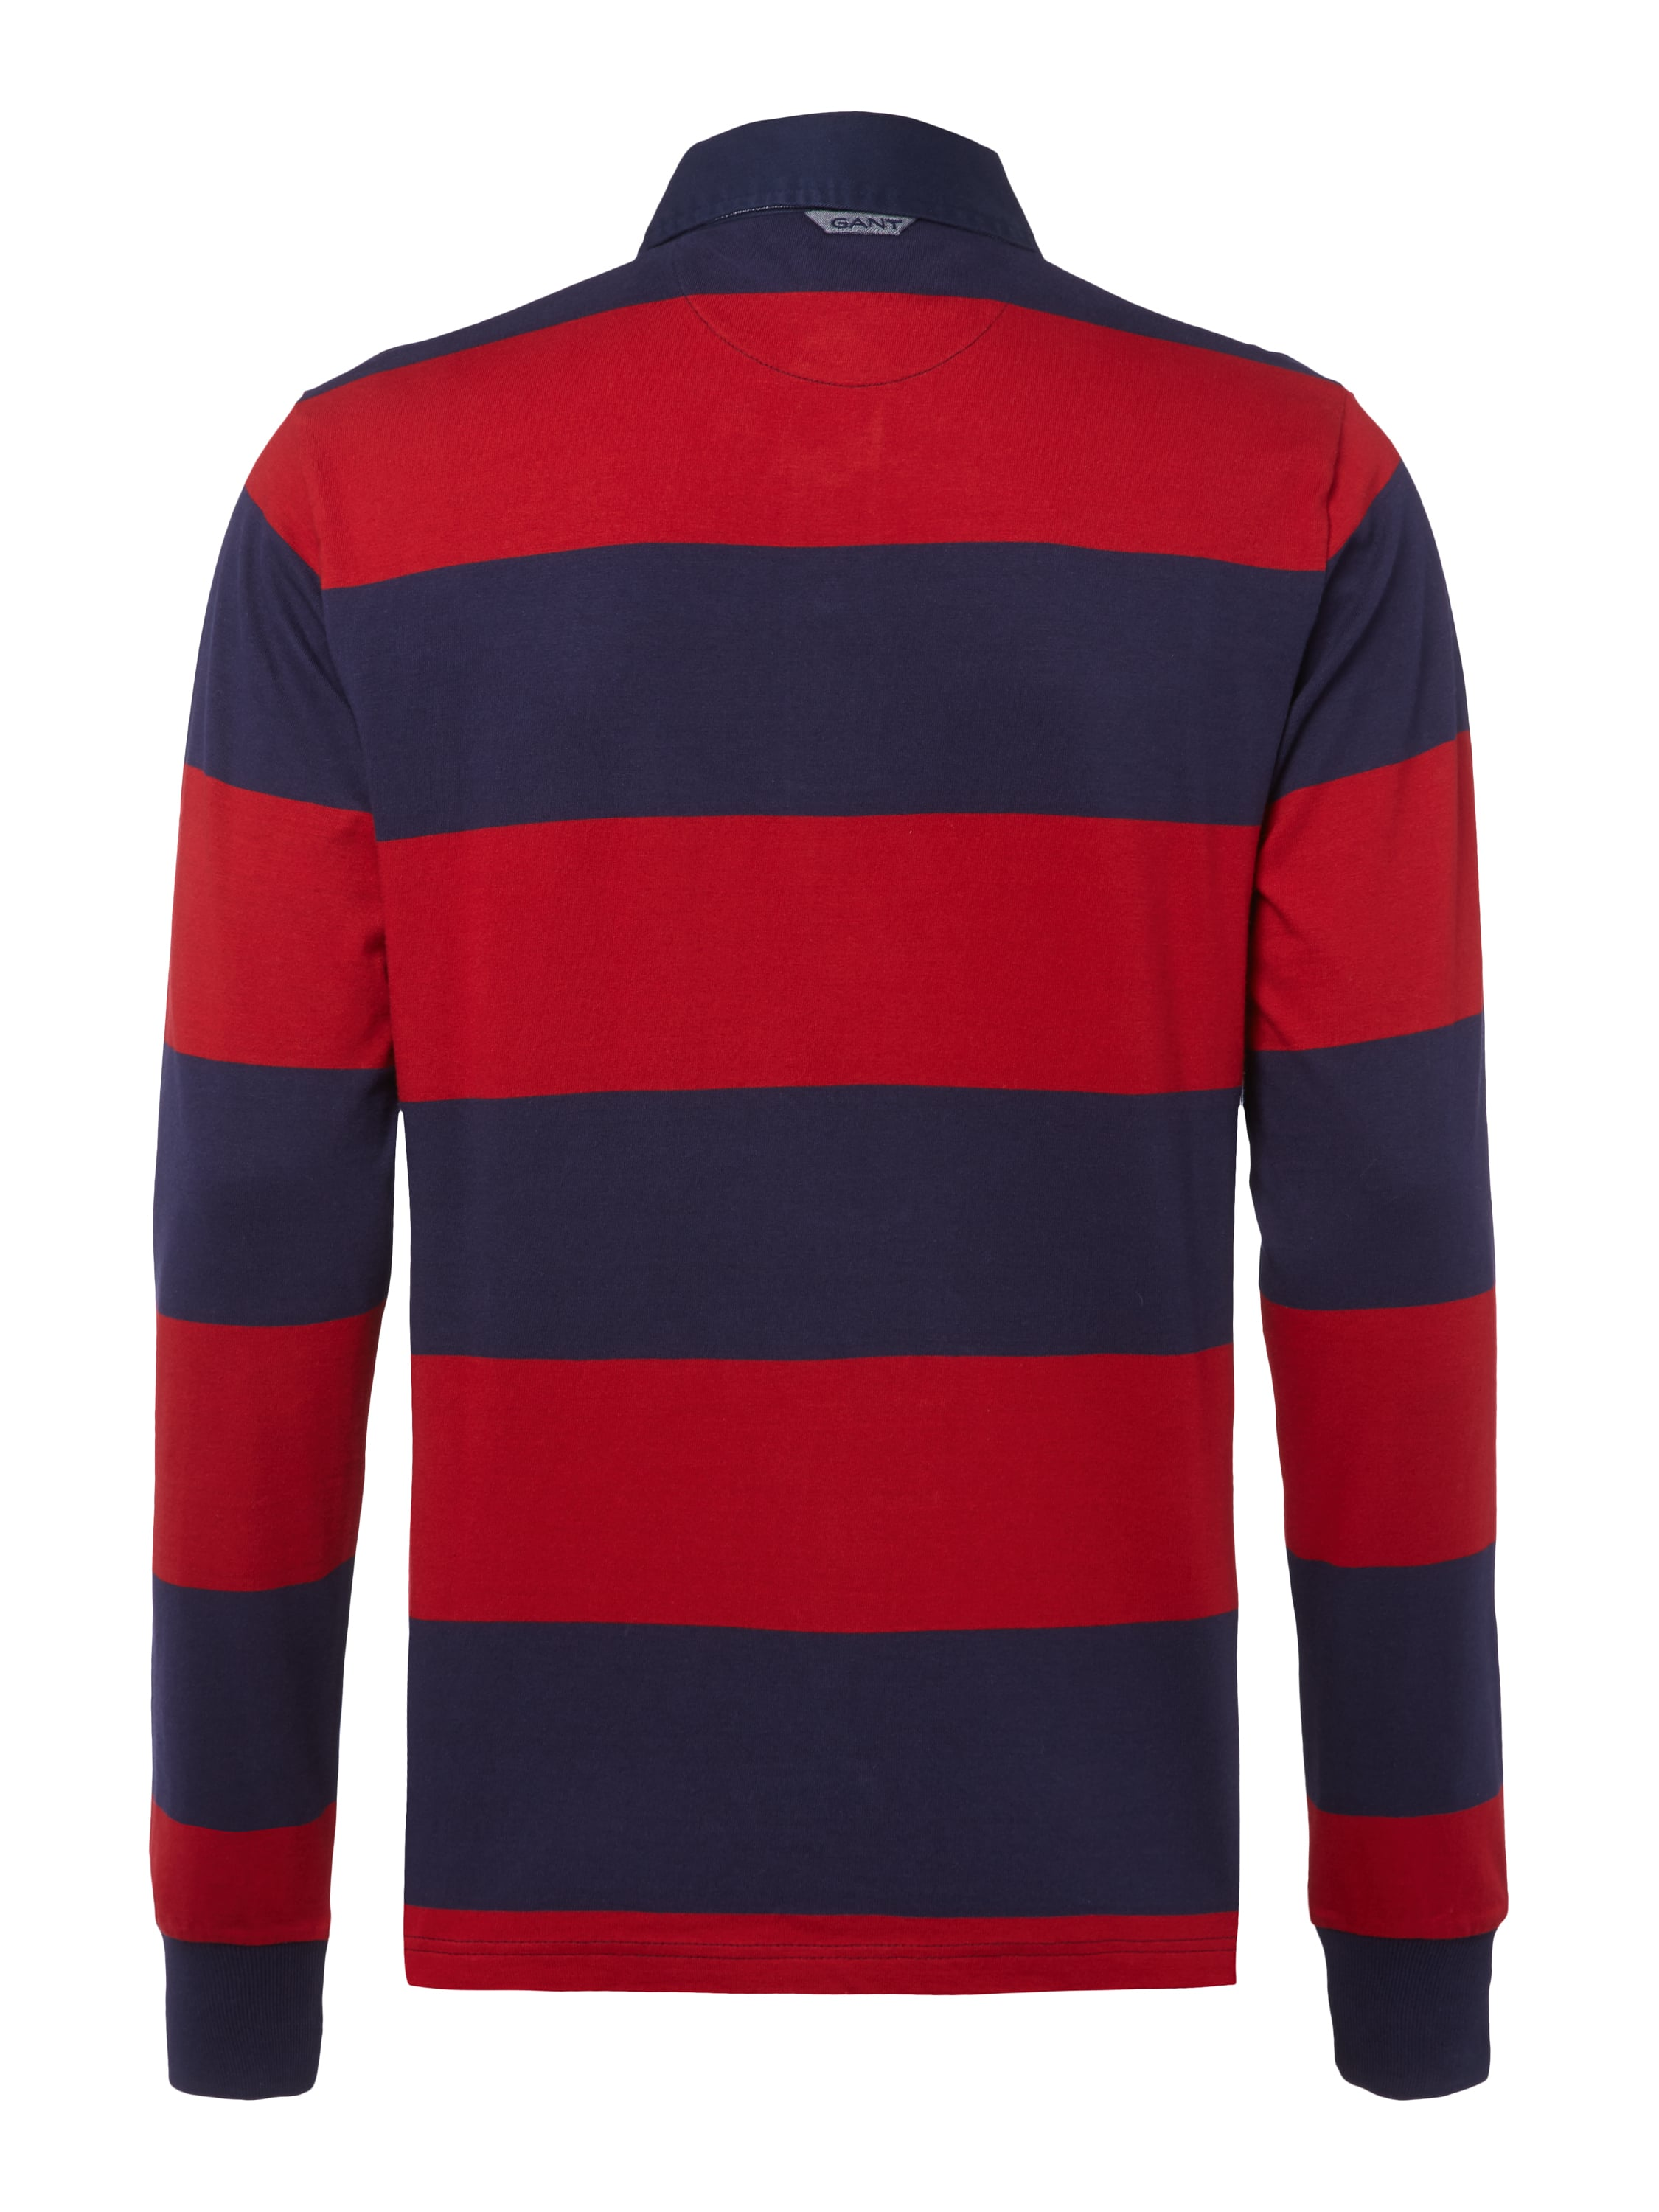 gant rugby shirt mit blockstreifen in rot online kaufen 9515968 p c at online shop. Black Bedroom Furniture Sets. Home Design Ideas